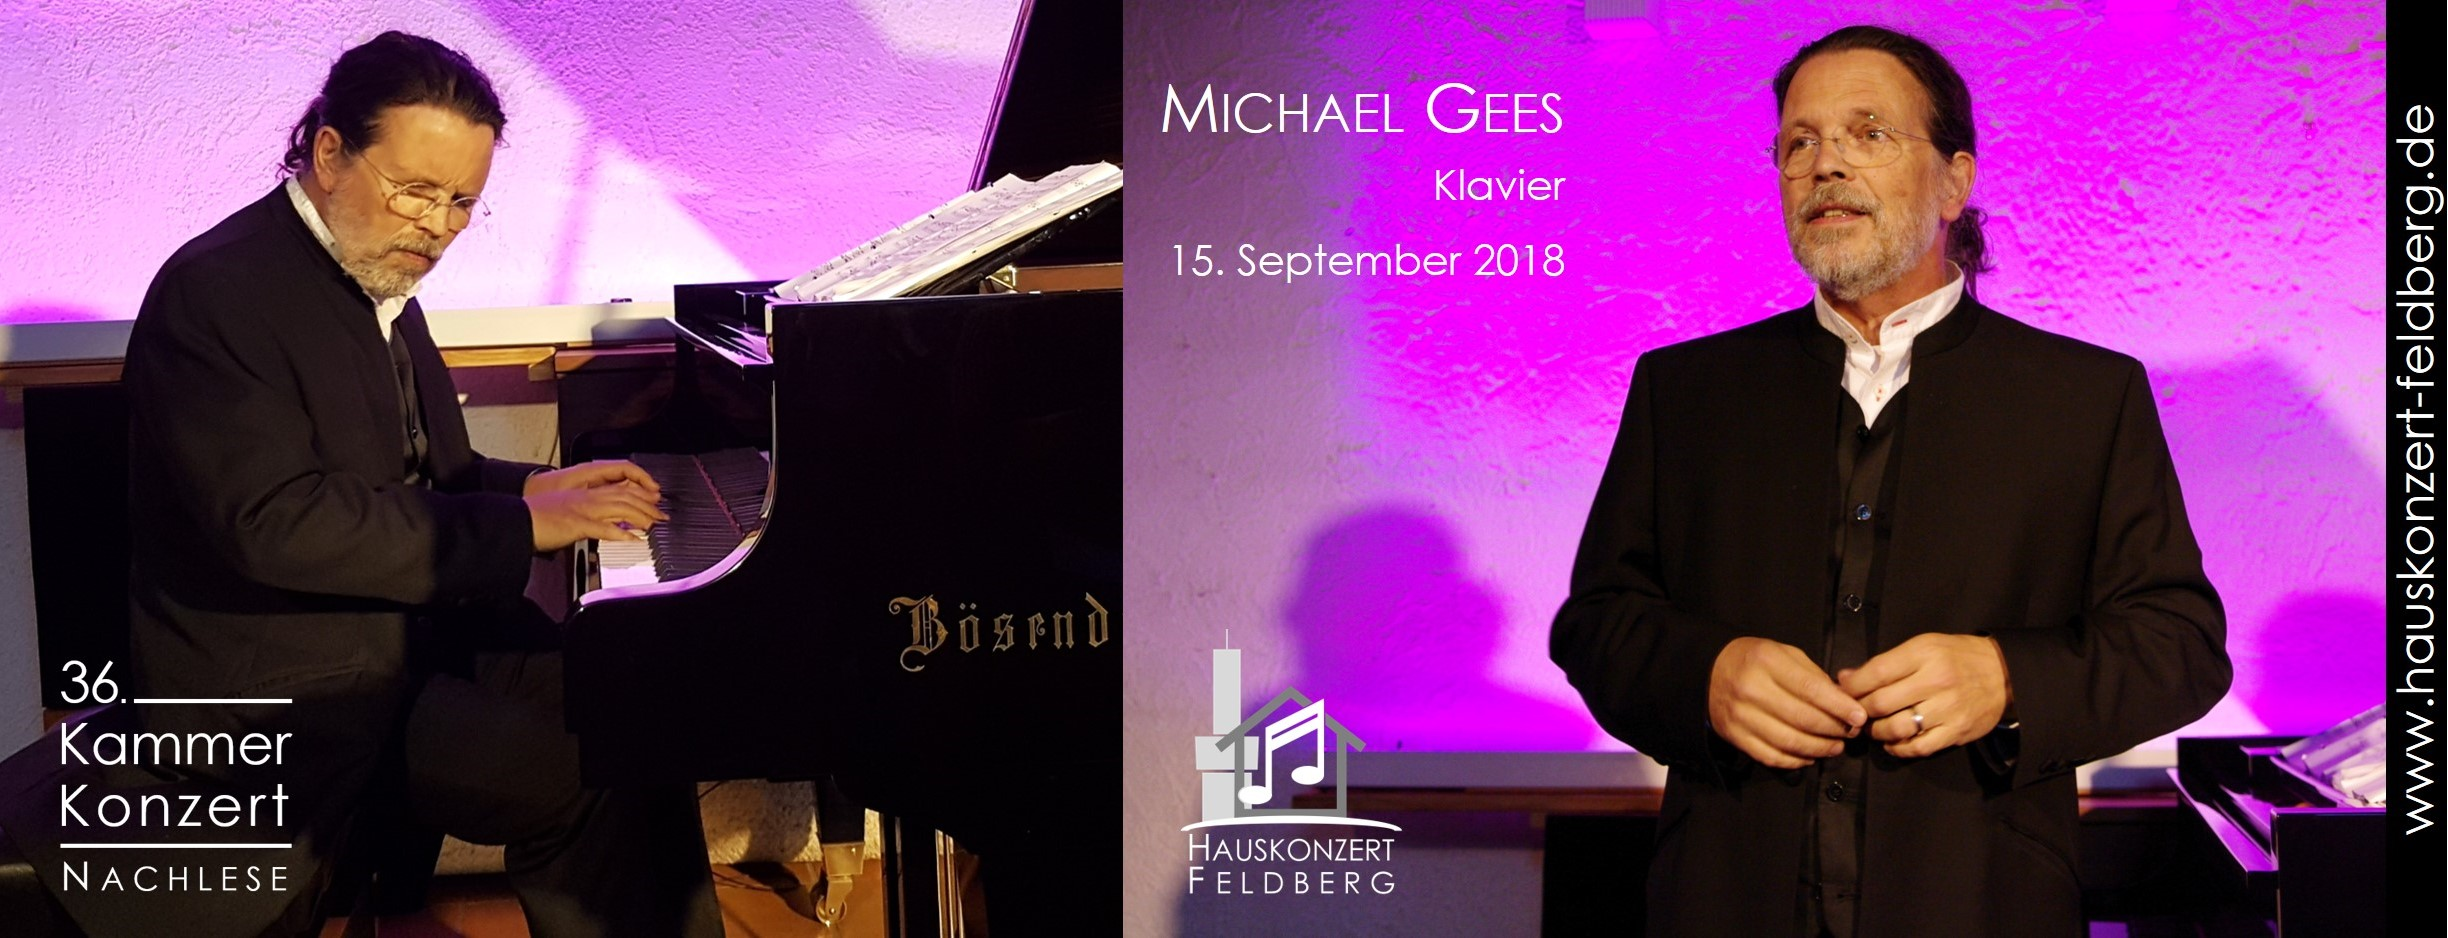 Michael Gees Nachlese 36